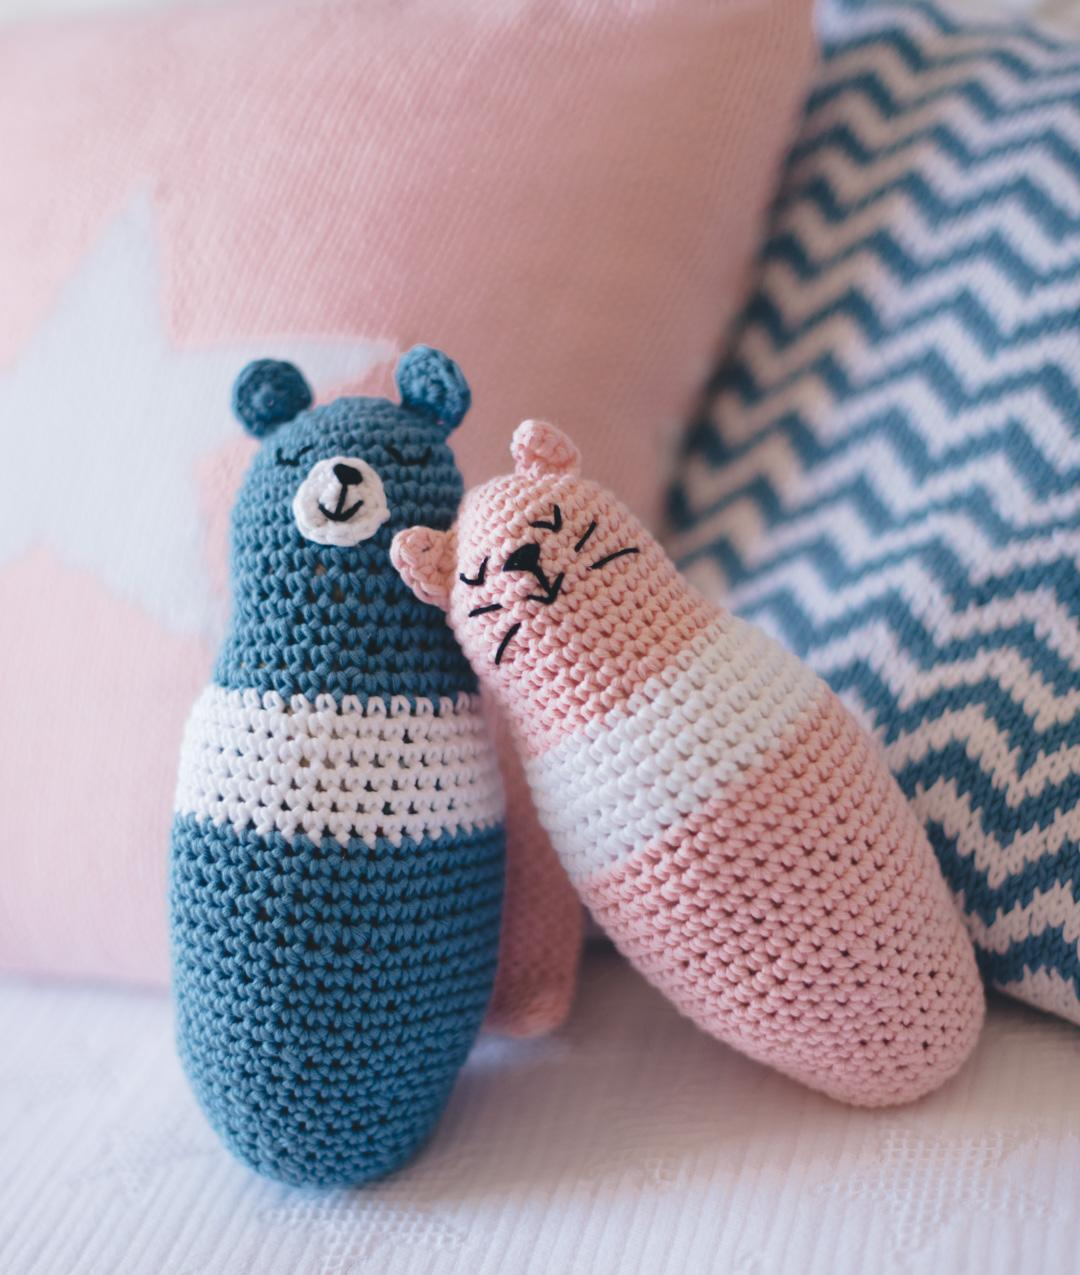 Home Decor Baby Collection - HomewareHome Decor Baby Collection - Homeware - TEDDY & KITTY AMIGURUMIS - 1